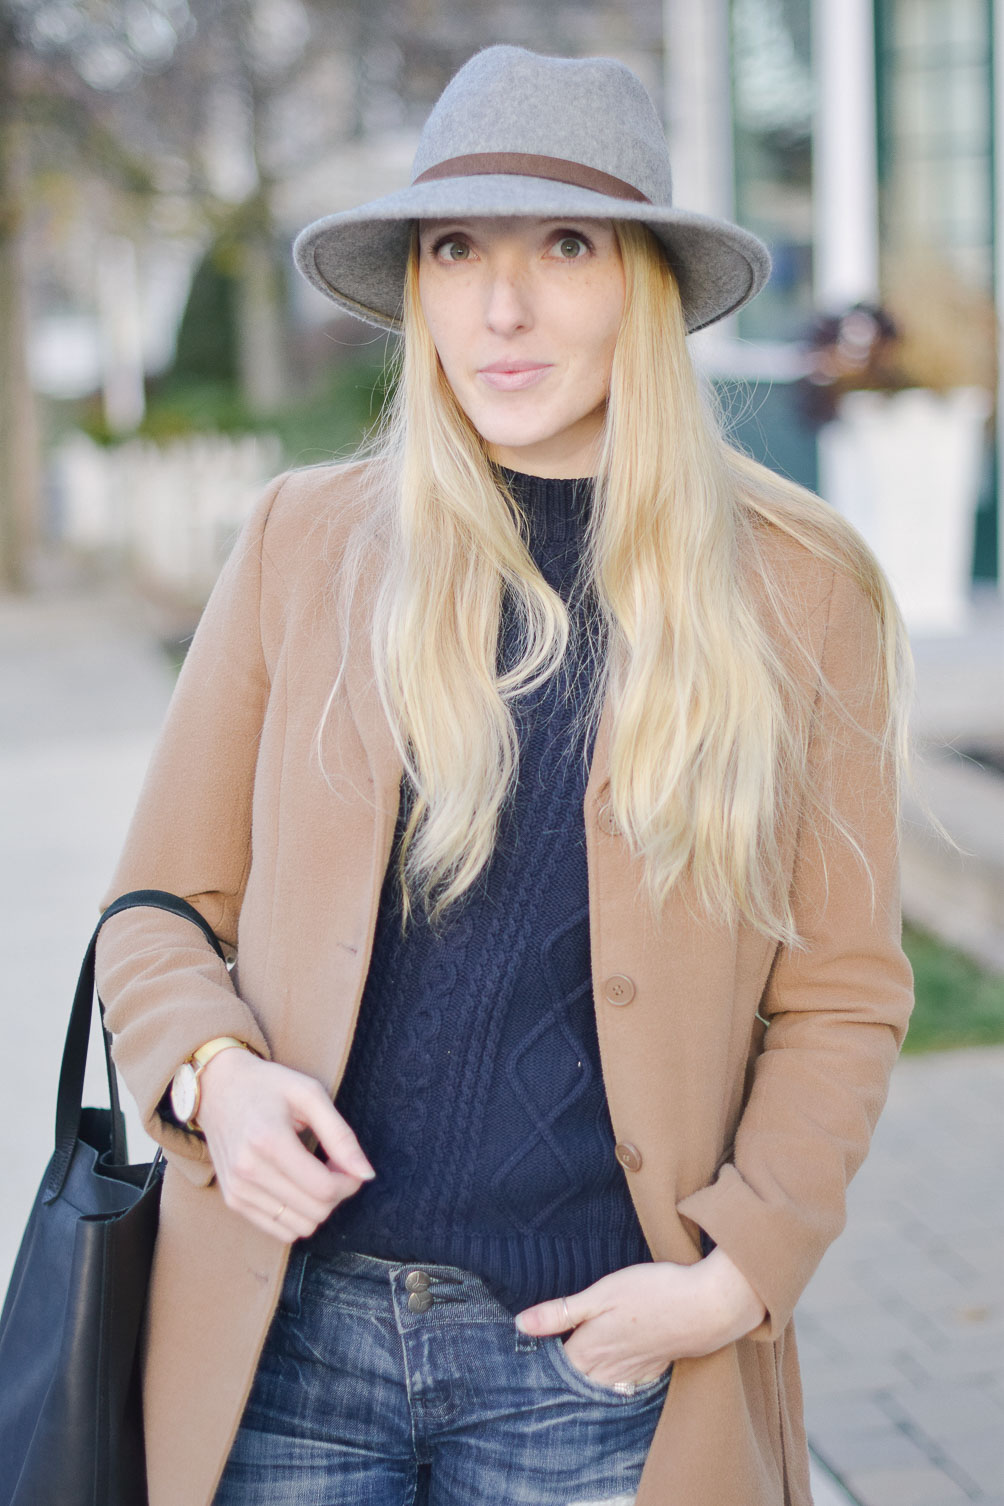 styling a grey felt fedora with winter camel coat and cable knit sweater